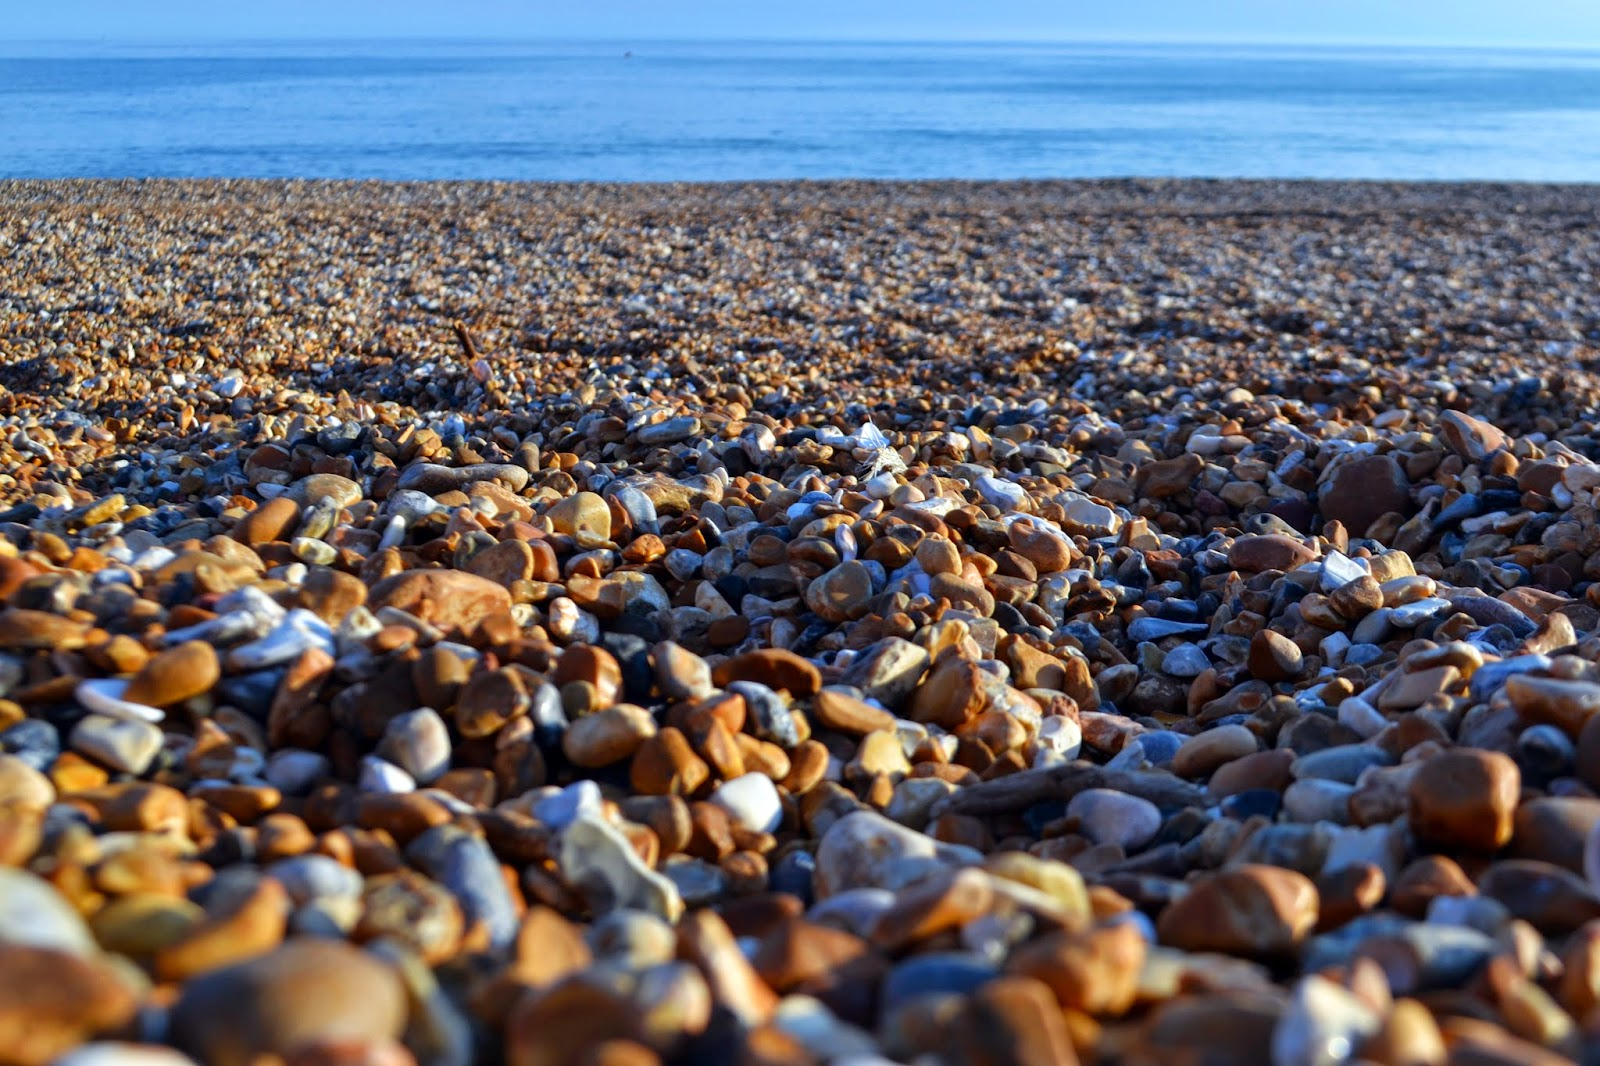 a close up shot of the pebbles on Bognor Regis Beach, the ocean has been seen out of focus in the background